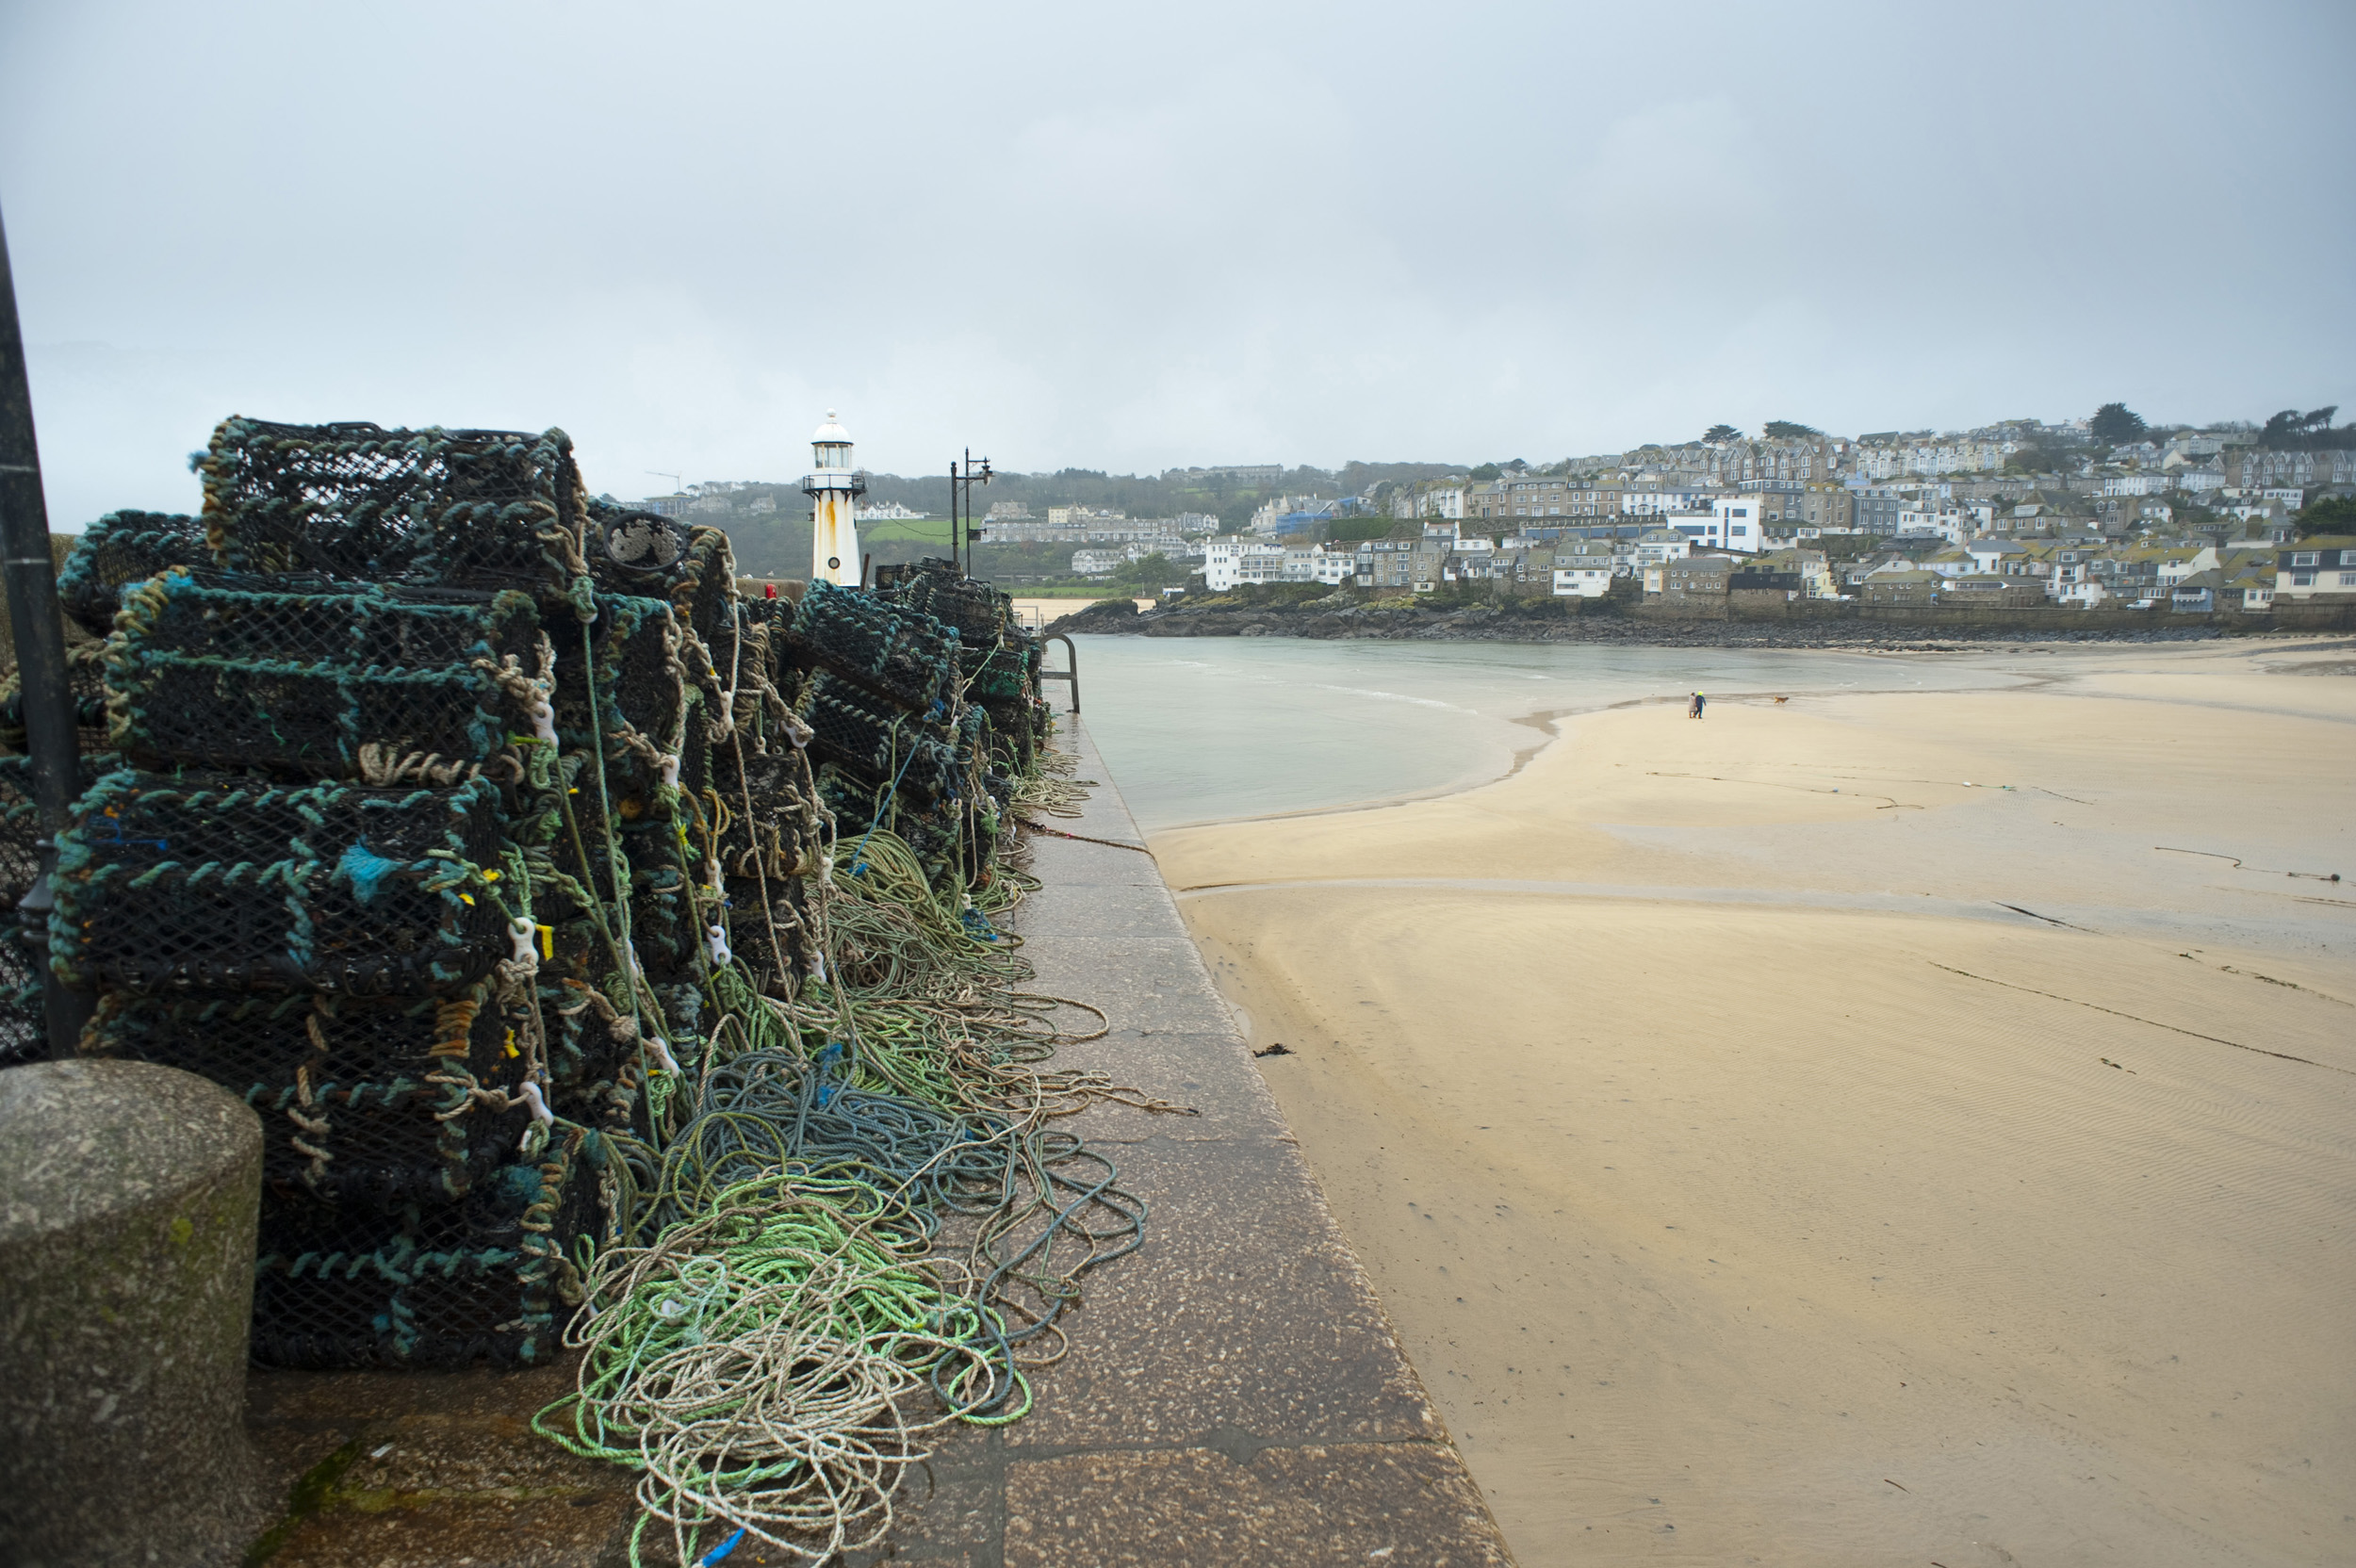 Crab or Lobster traps piled up on the quayside at Saint Ives harbour, Cornwall, UK